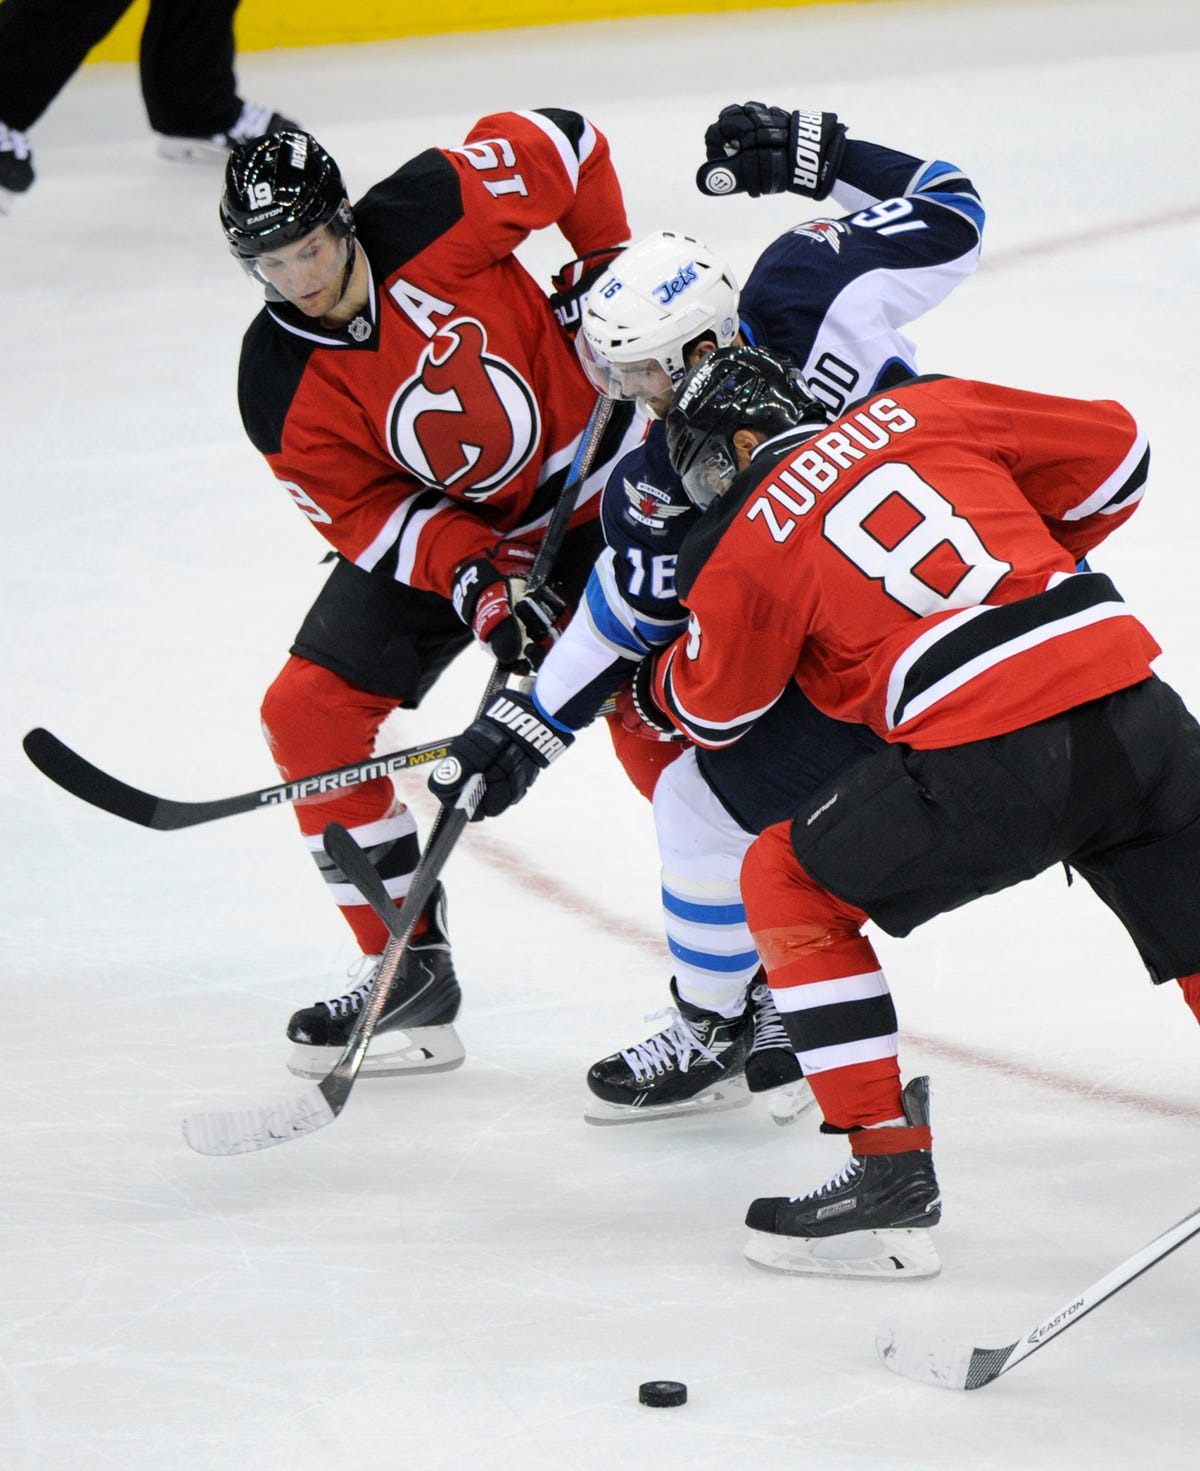 newest 6882f b21f1 New Jersey Devils defeat Winnipeg Jets